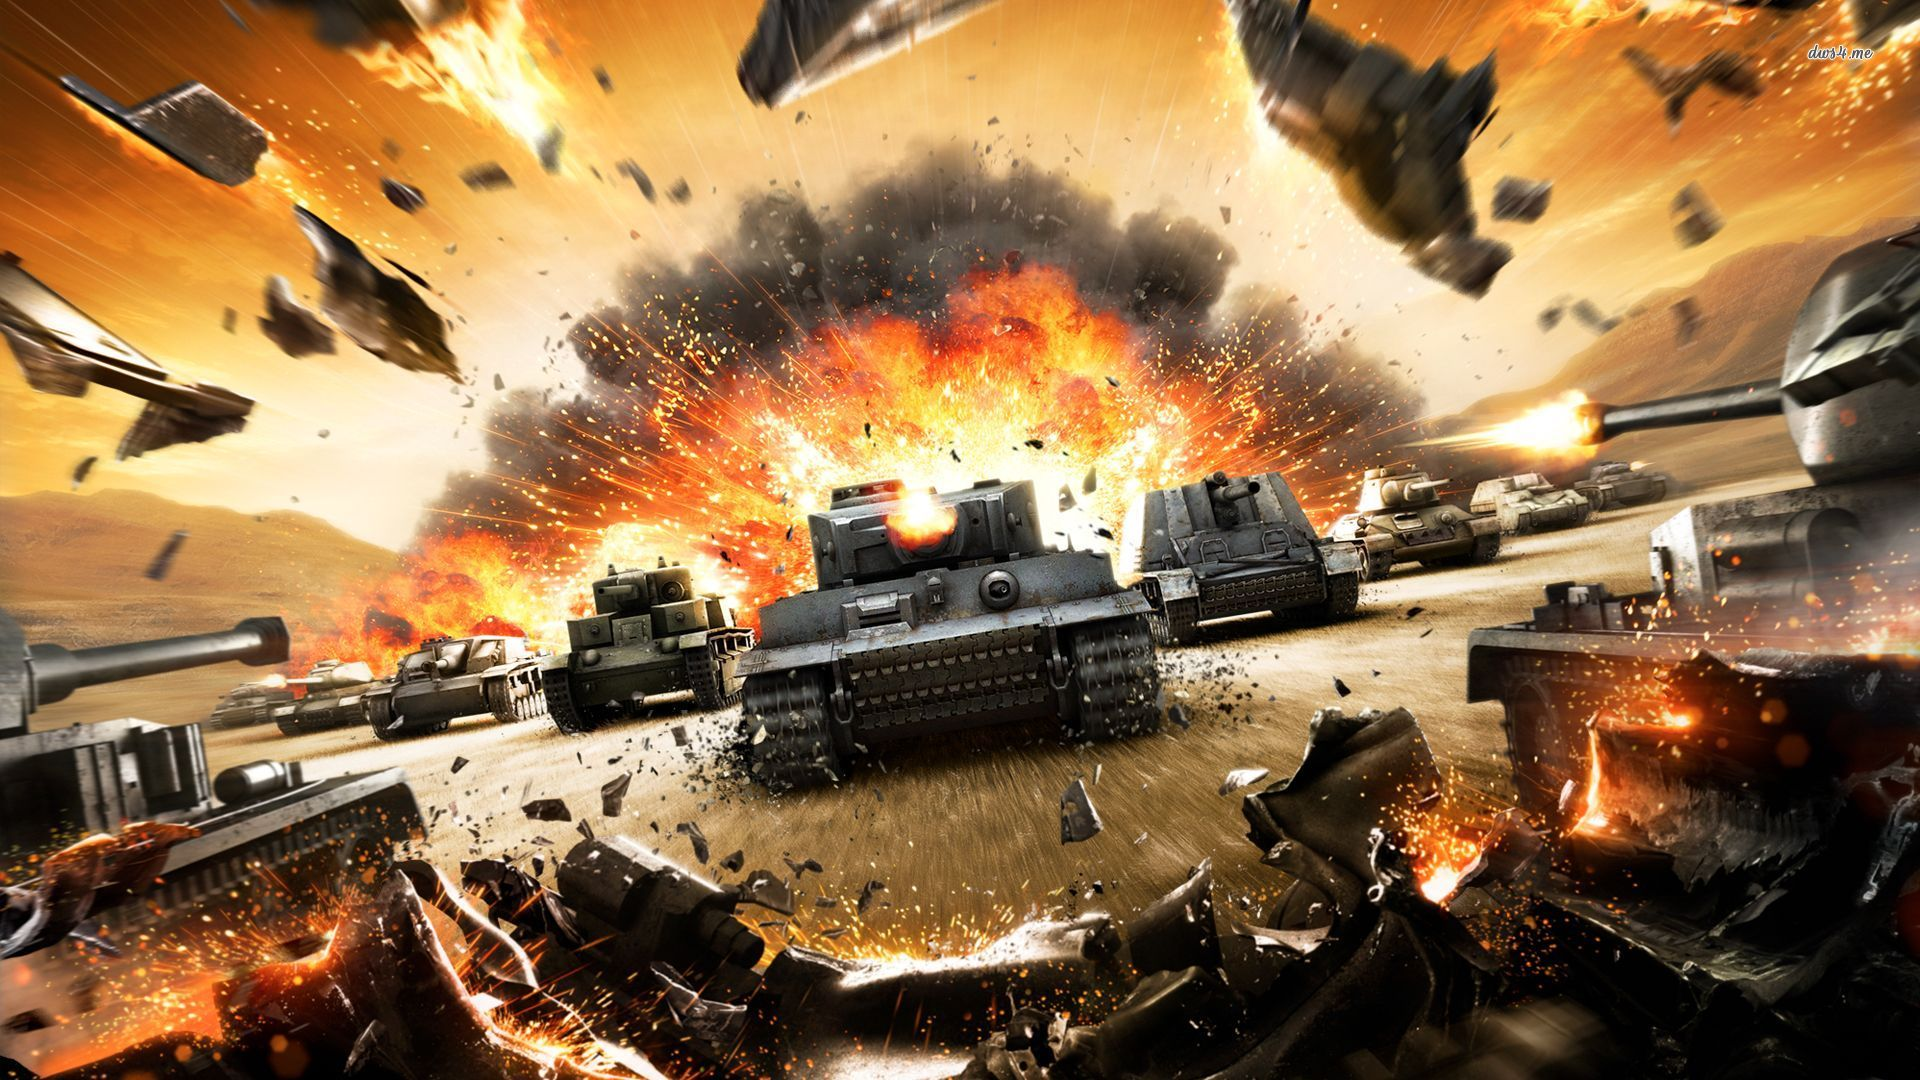 This World Of Tanks Trailer Explodes Everything To Celebrate 100 Million Players VG247